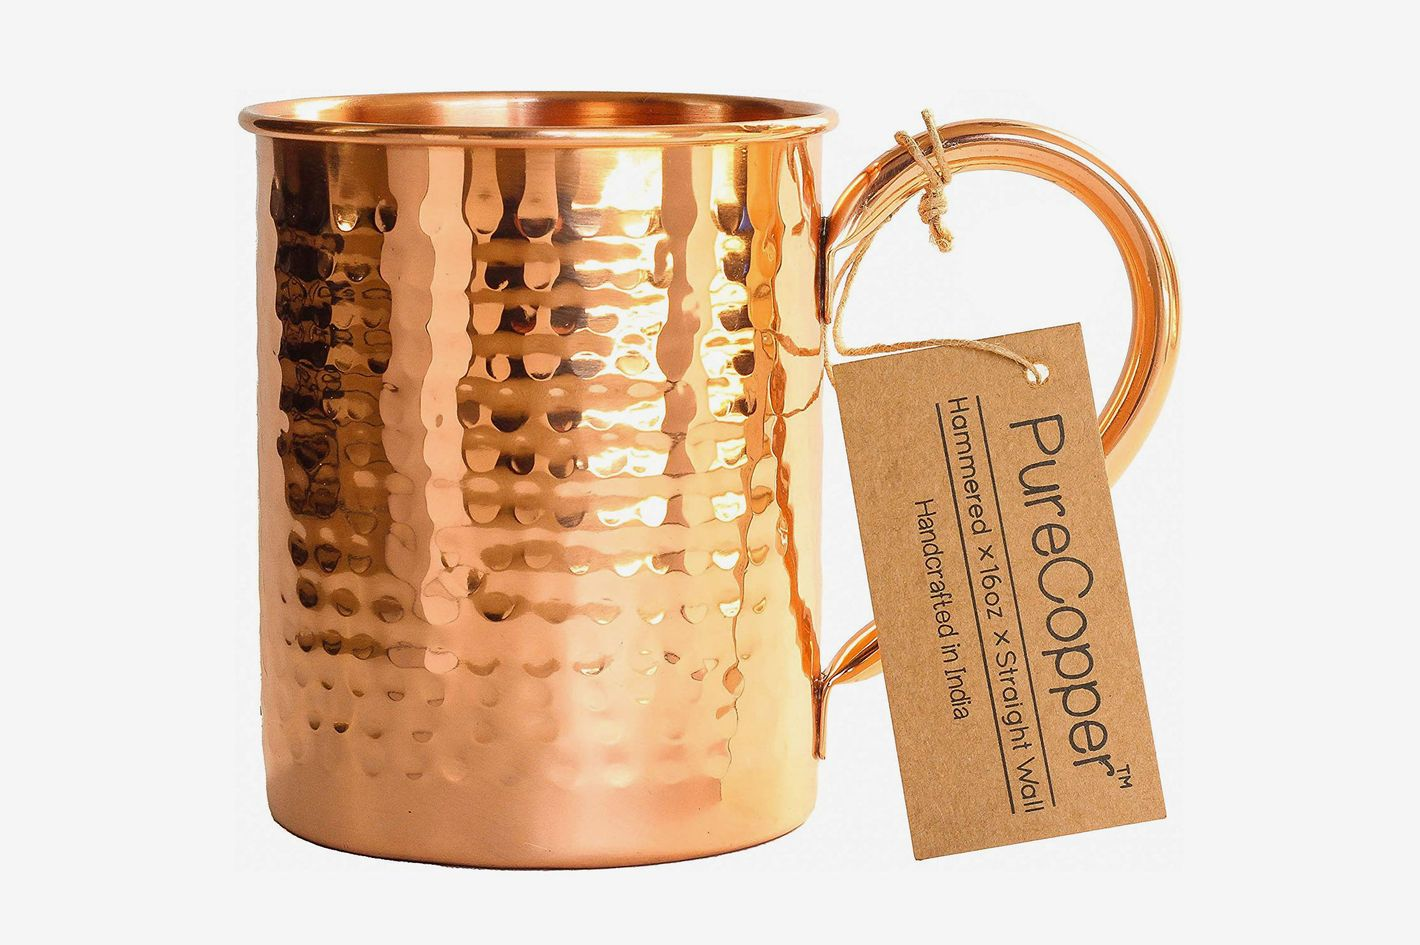 PureCopper Copper Mug for Moscow Mule